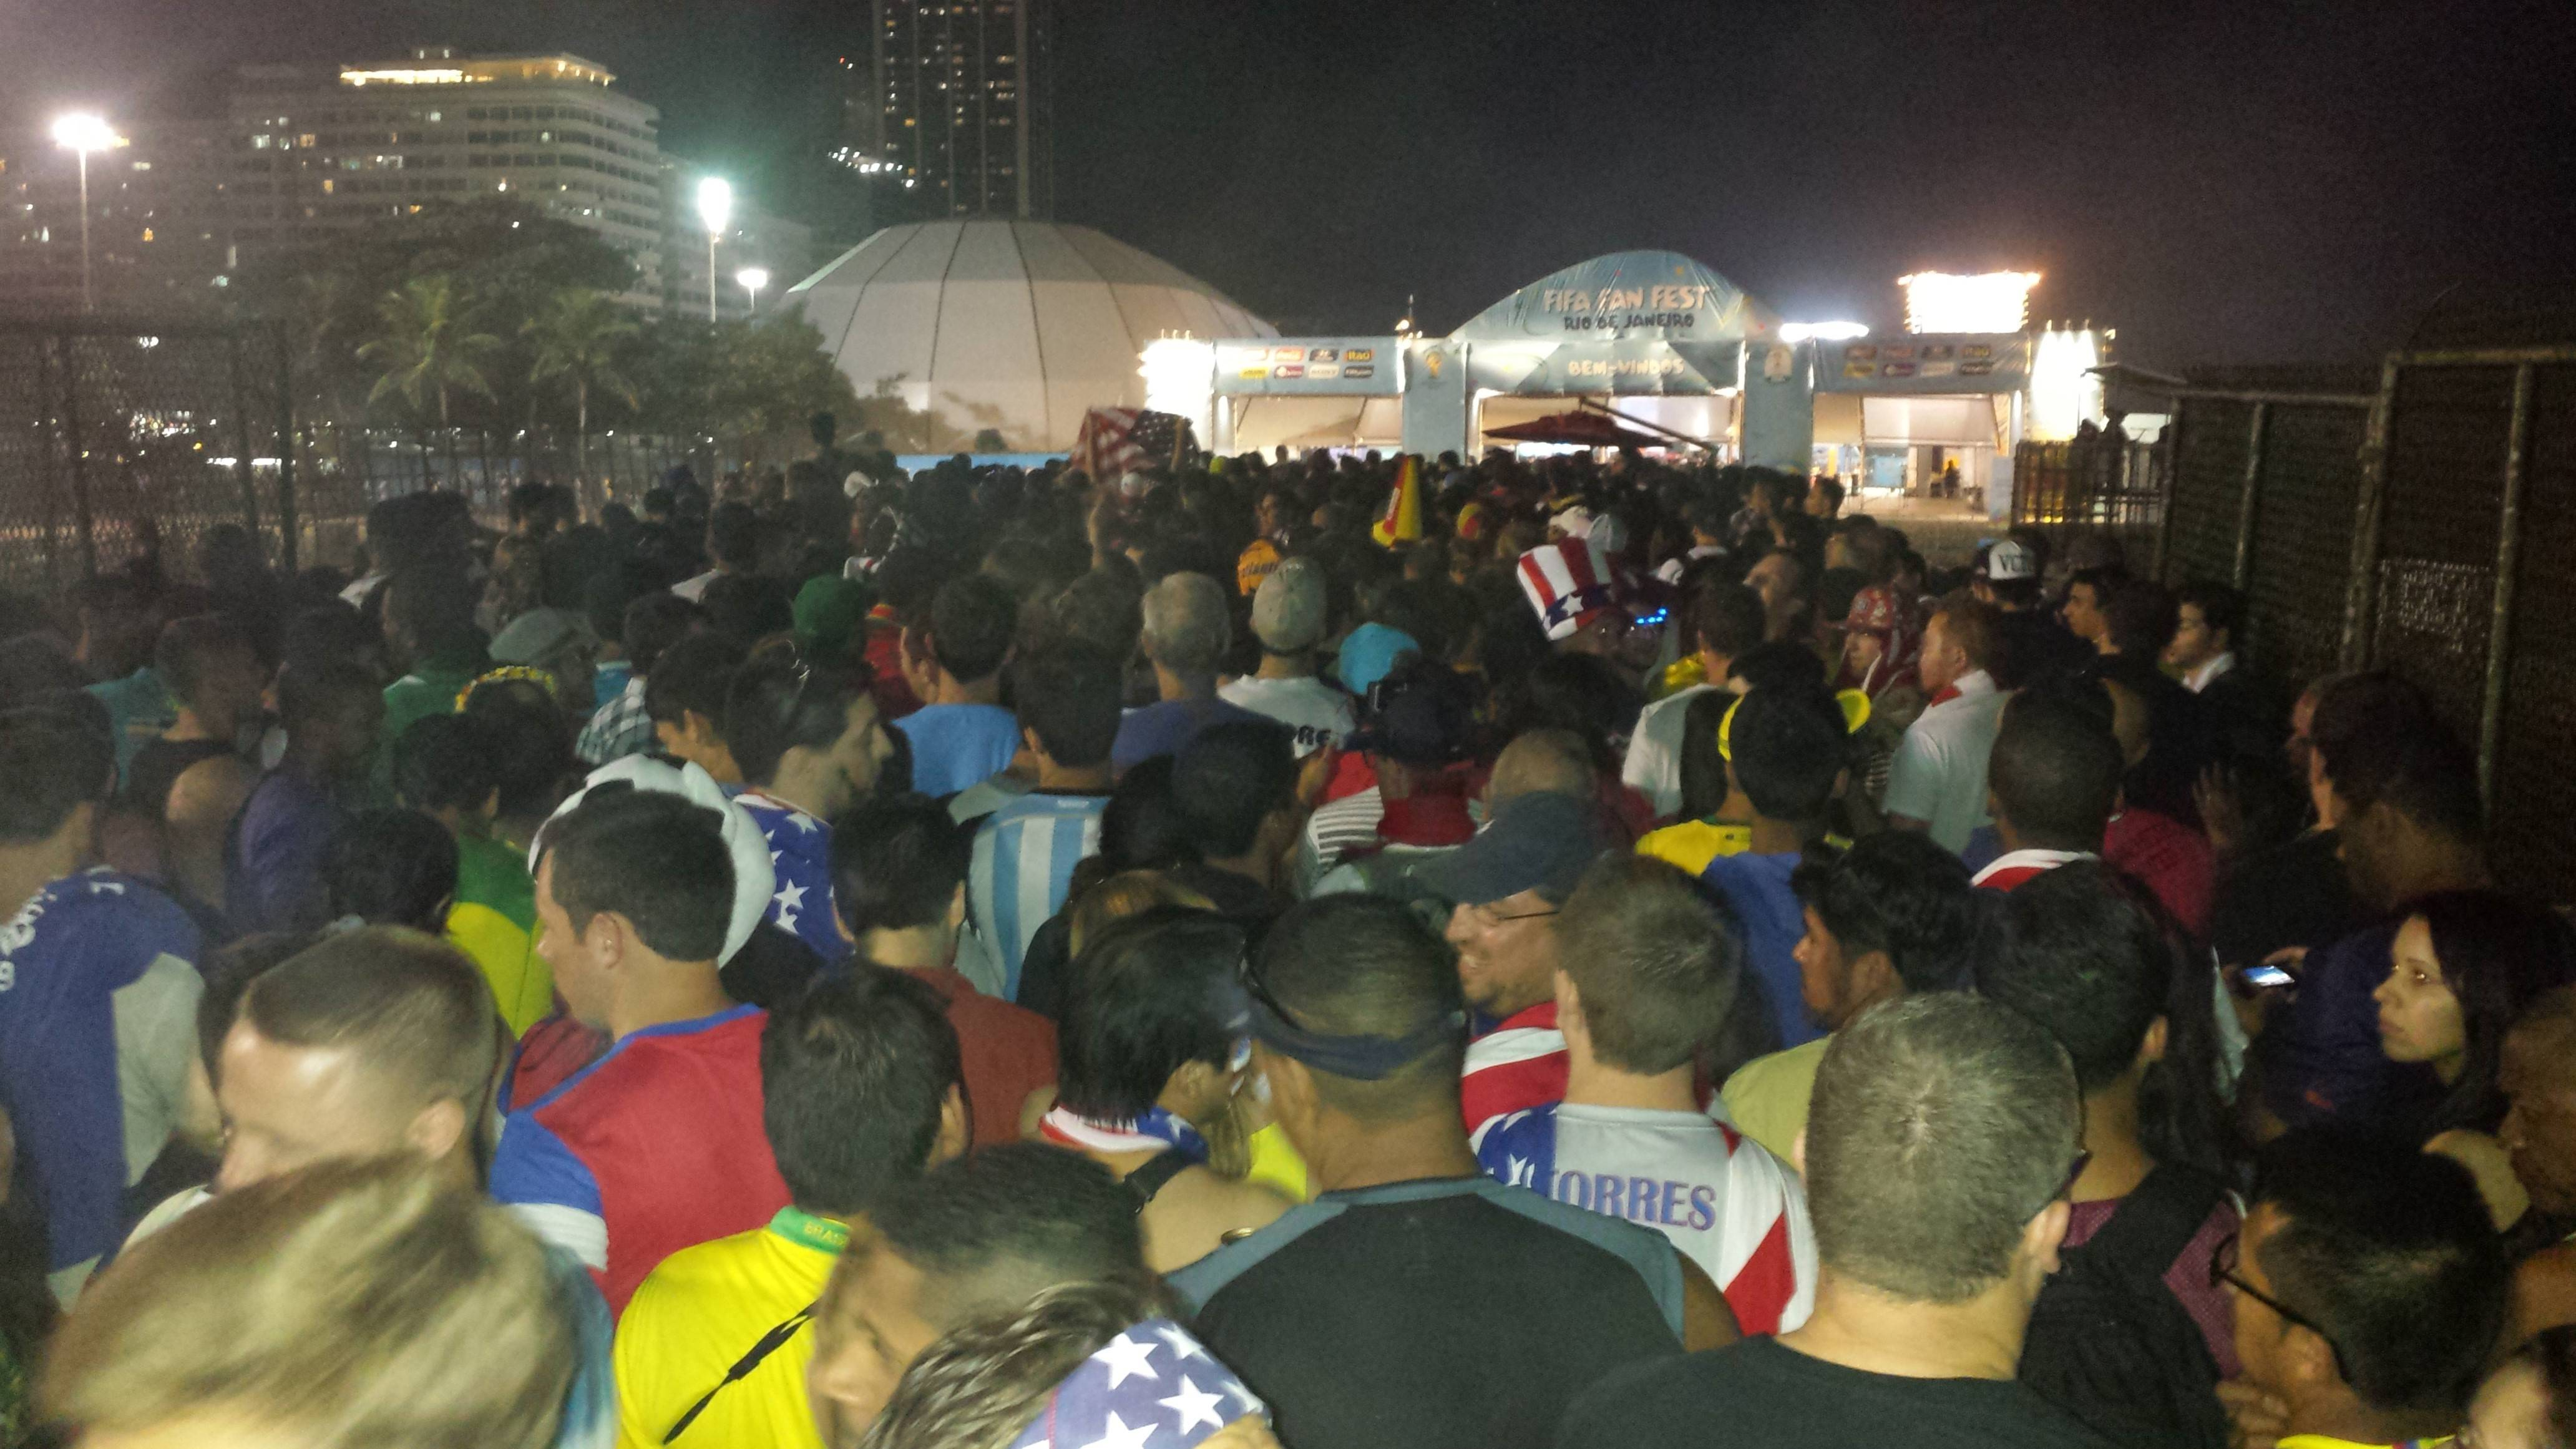 This was the scene at Copacabana Beach in Rio de Janeiro on Sunday as thousands watched on a giant-screen television when Team USA battled Portugal in the World Cup.